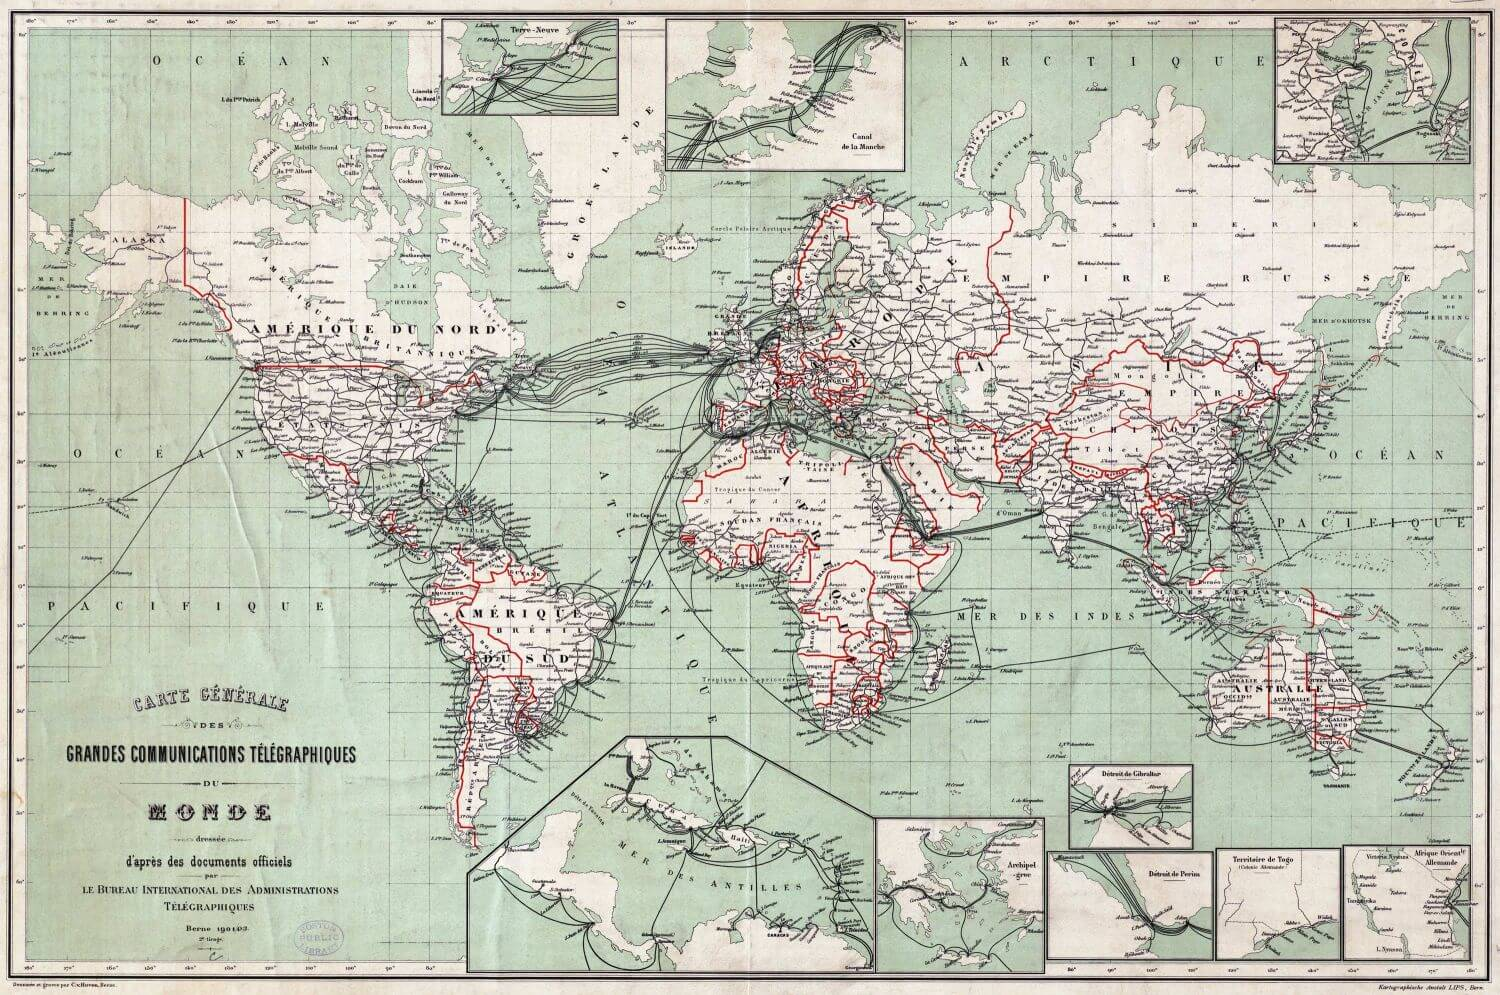 Cable telegraph Map 1901-Berne-Map-BPL-Leventhal-CC from Bill Burns